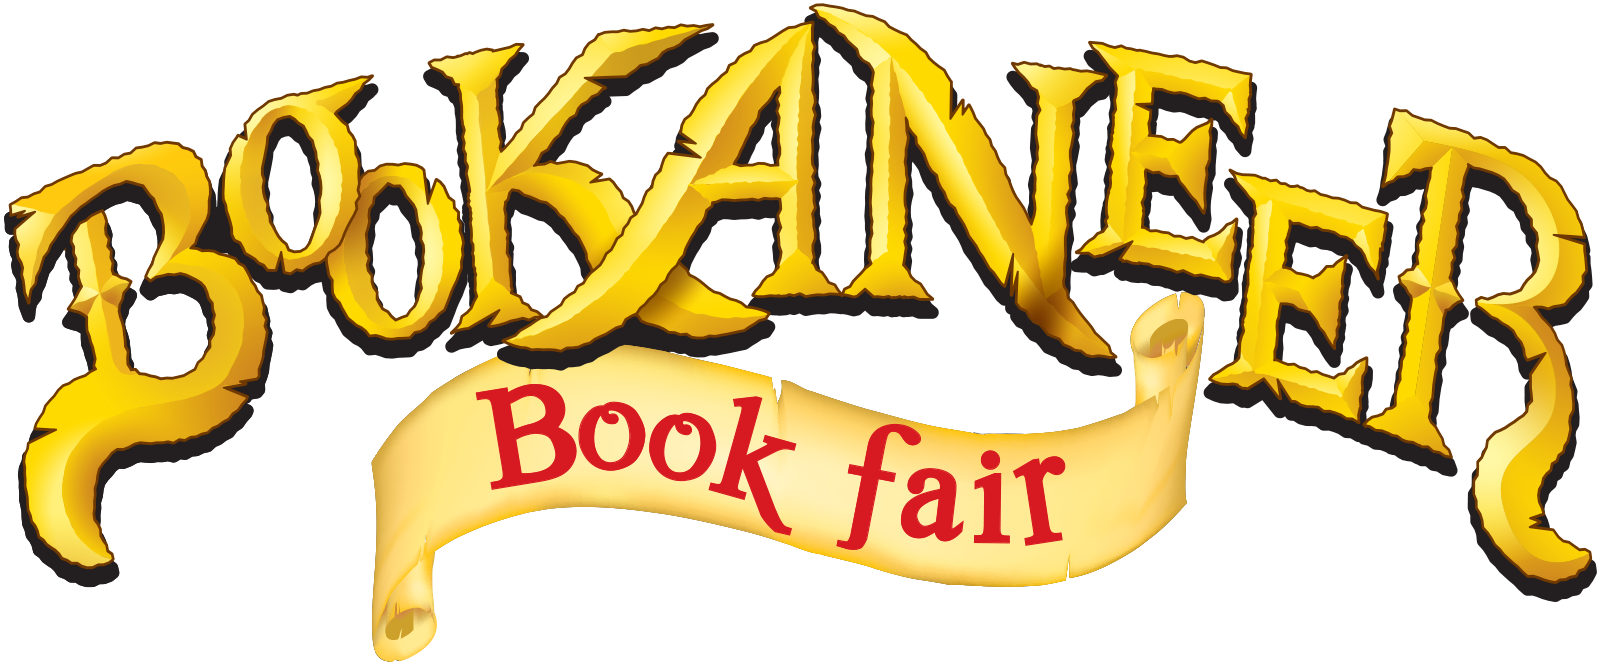 1601x662 Collection Of Pirate Book Fair Clipart High Quality, Free